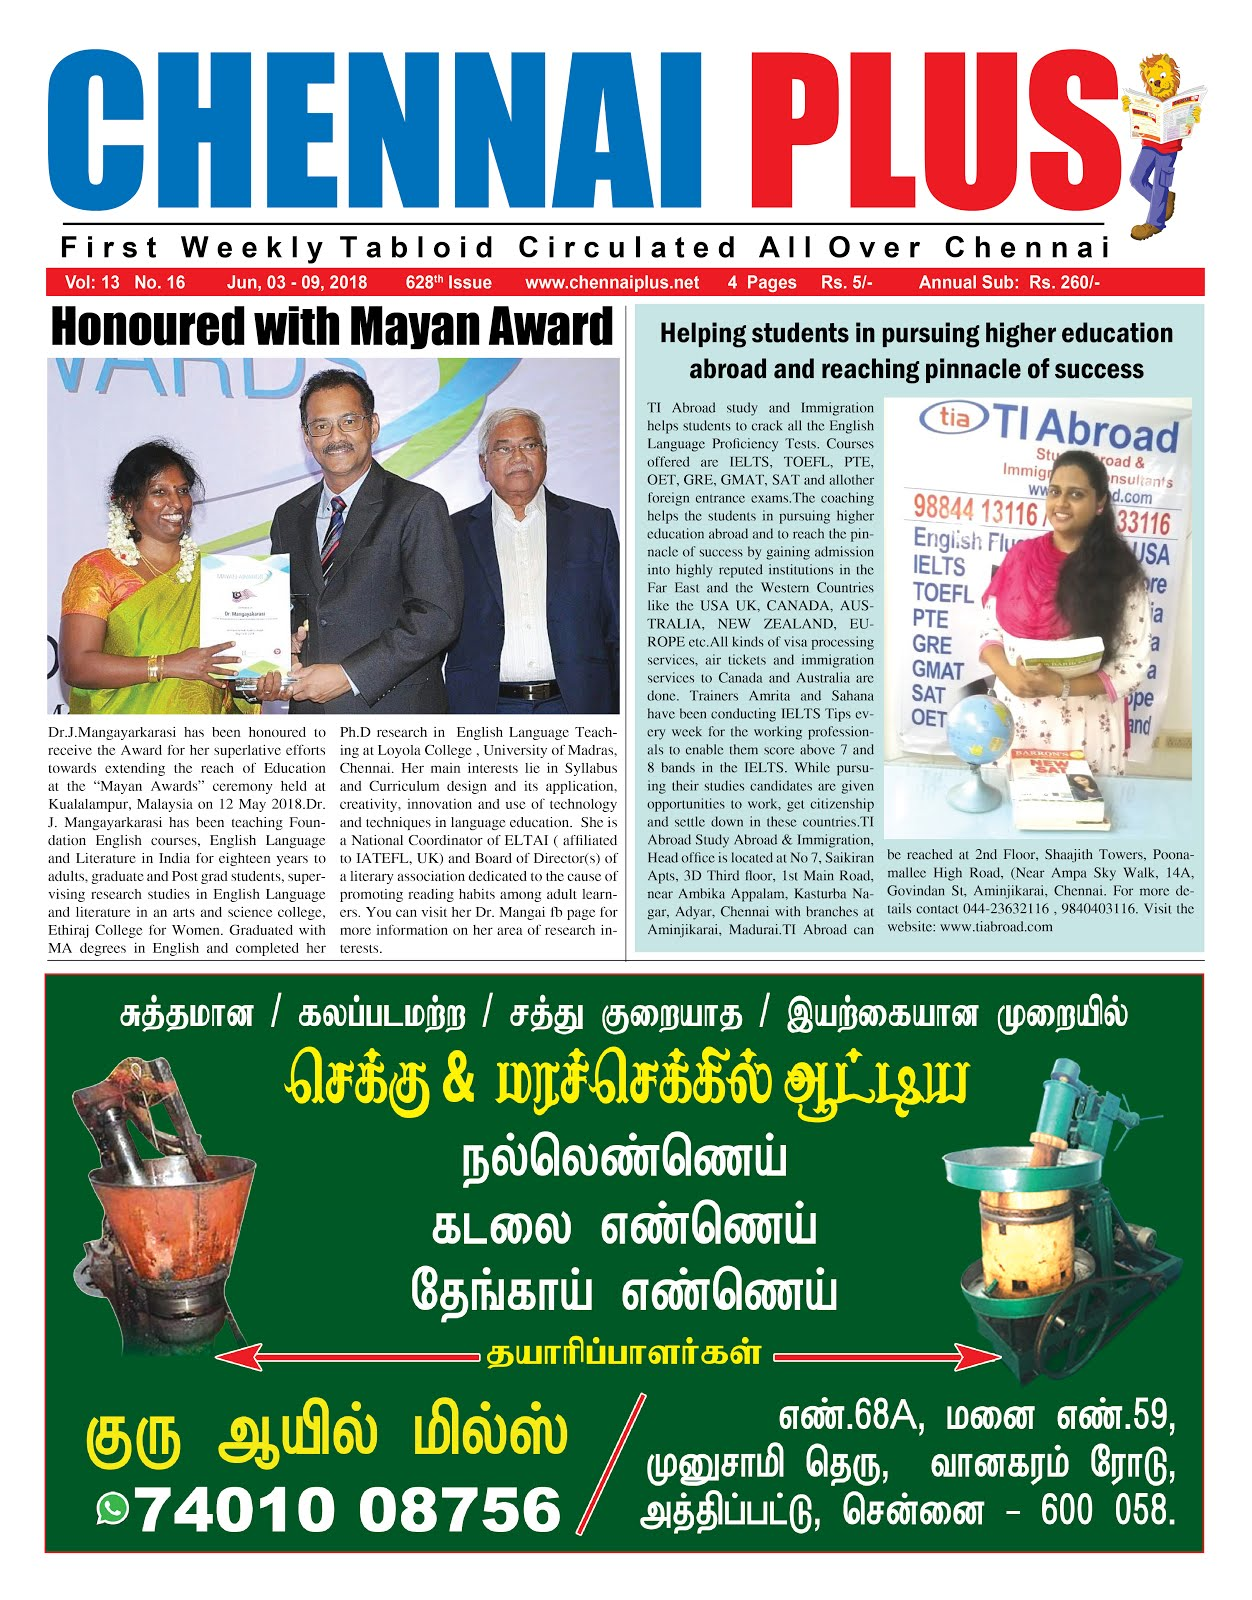 Chennai Plus_03.06.2018_Issue